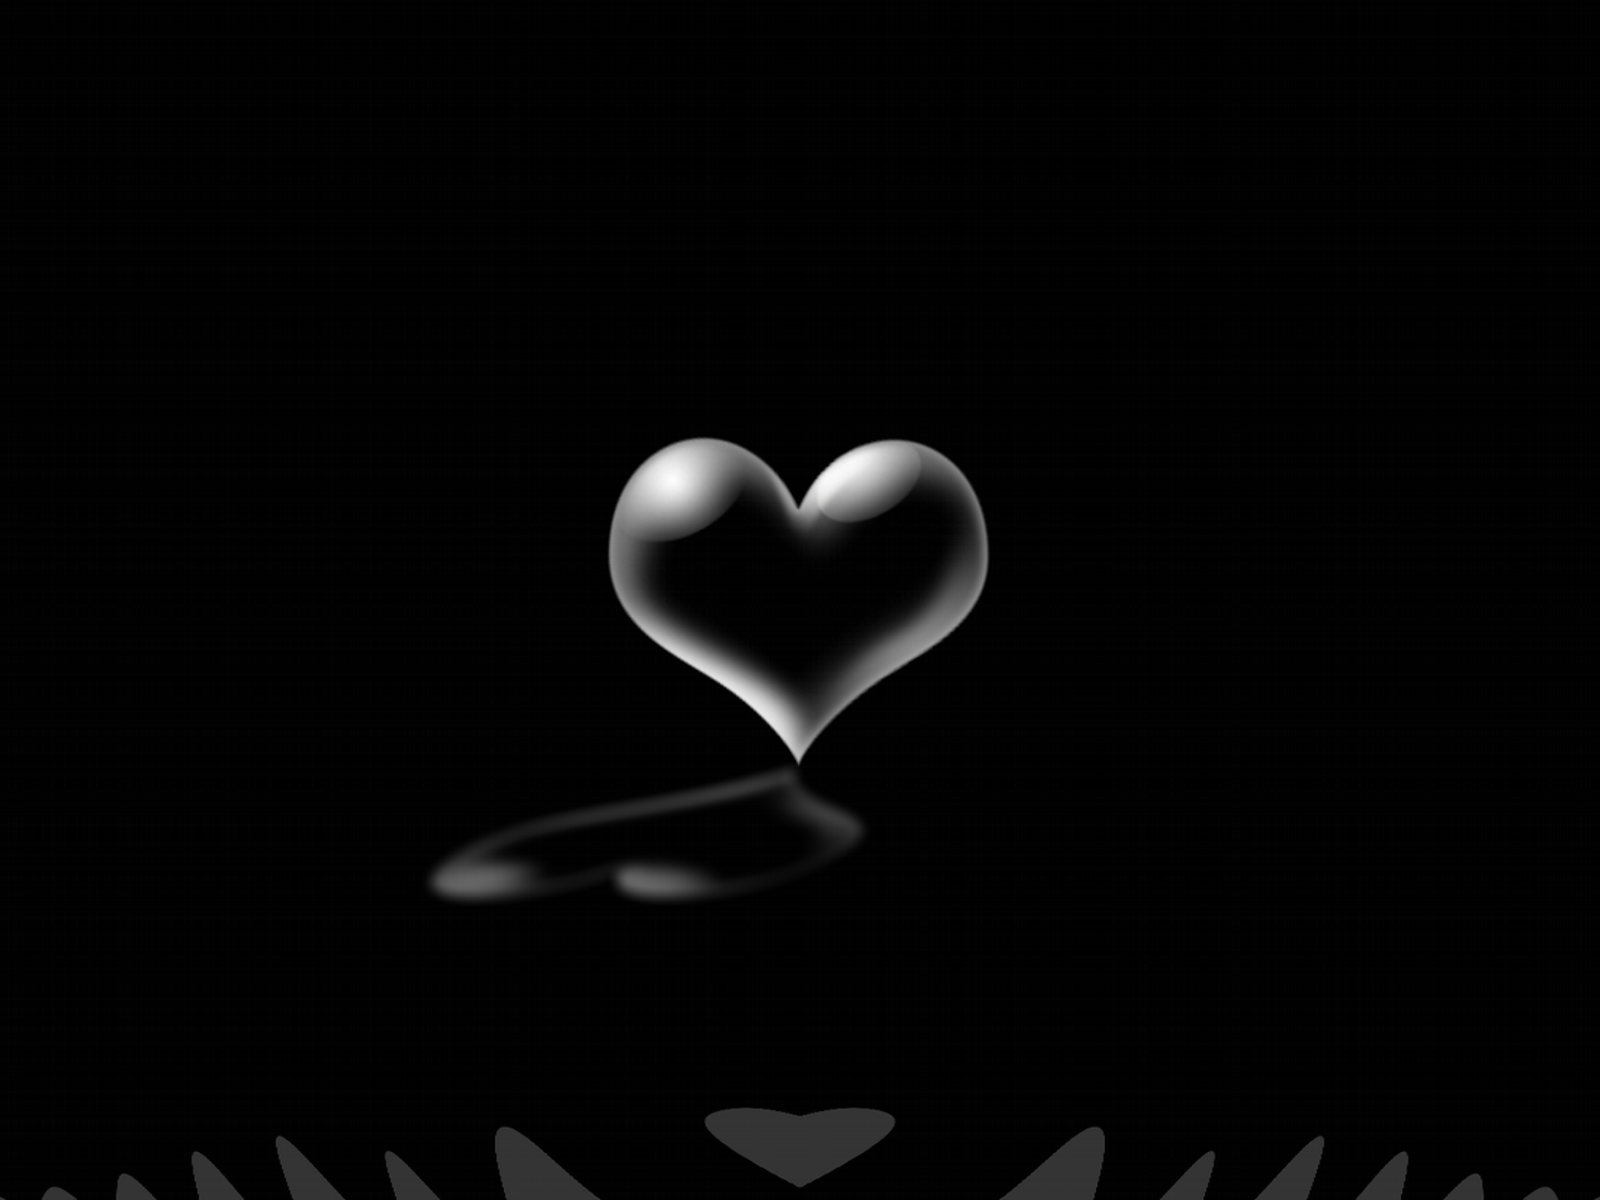 Wallpapers For Black And White Hearts Wallpaper 1600x1200